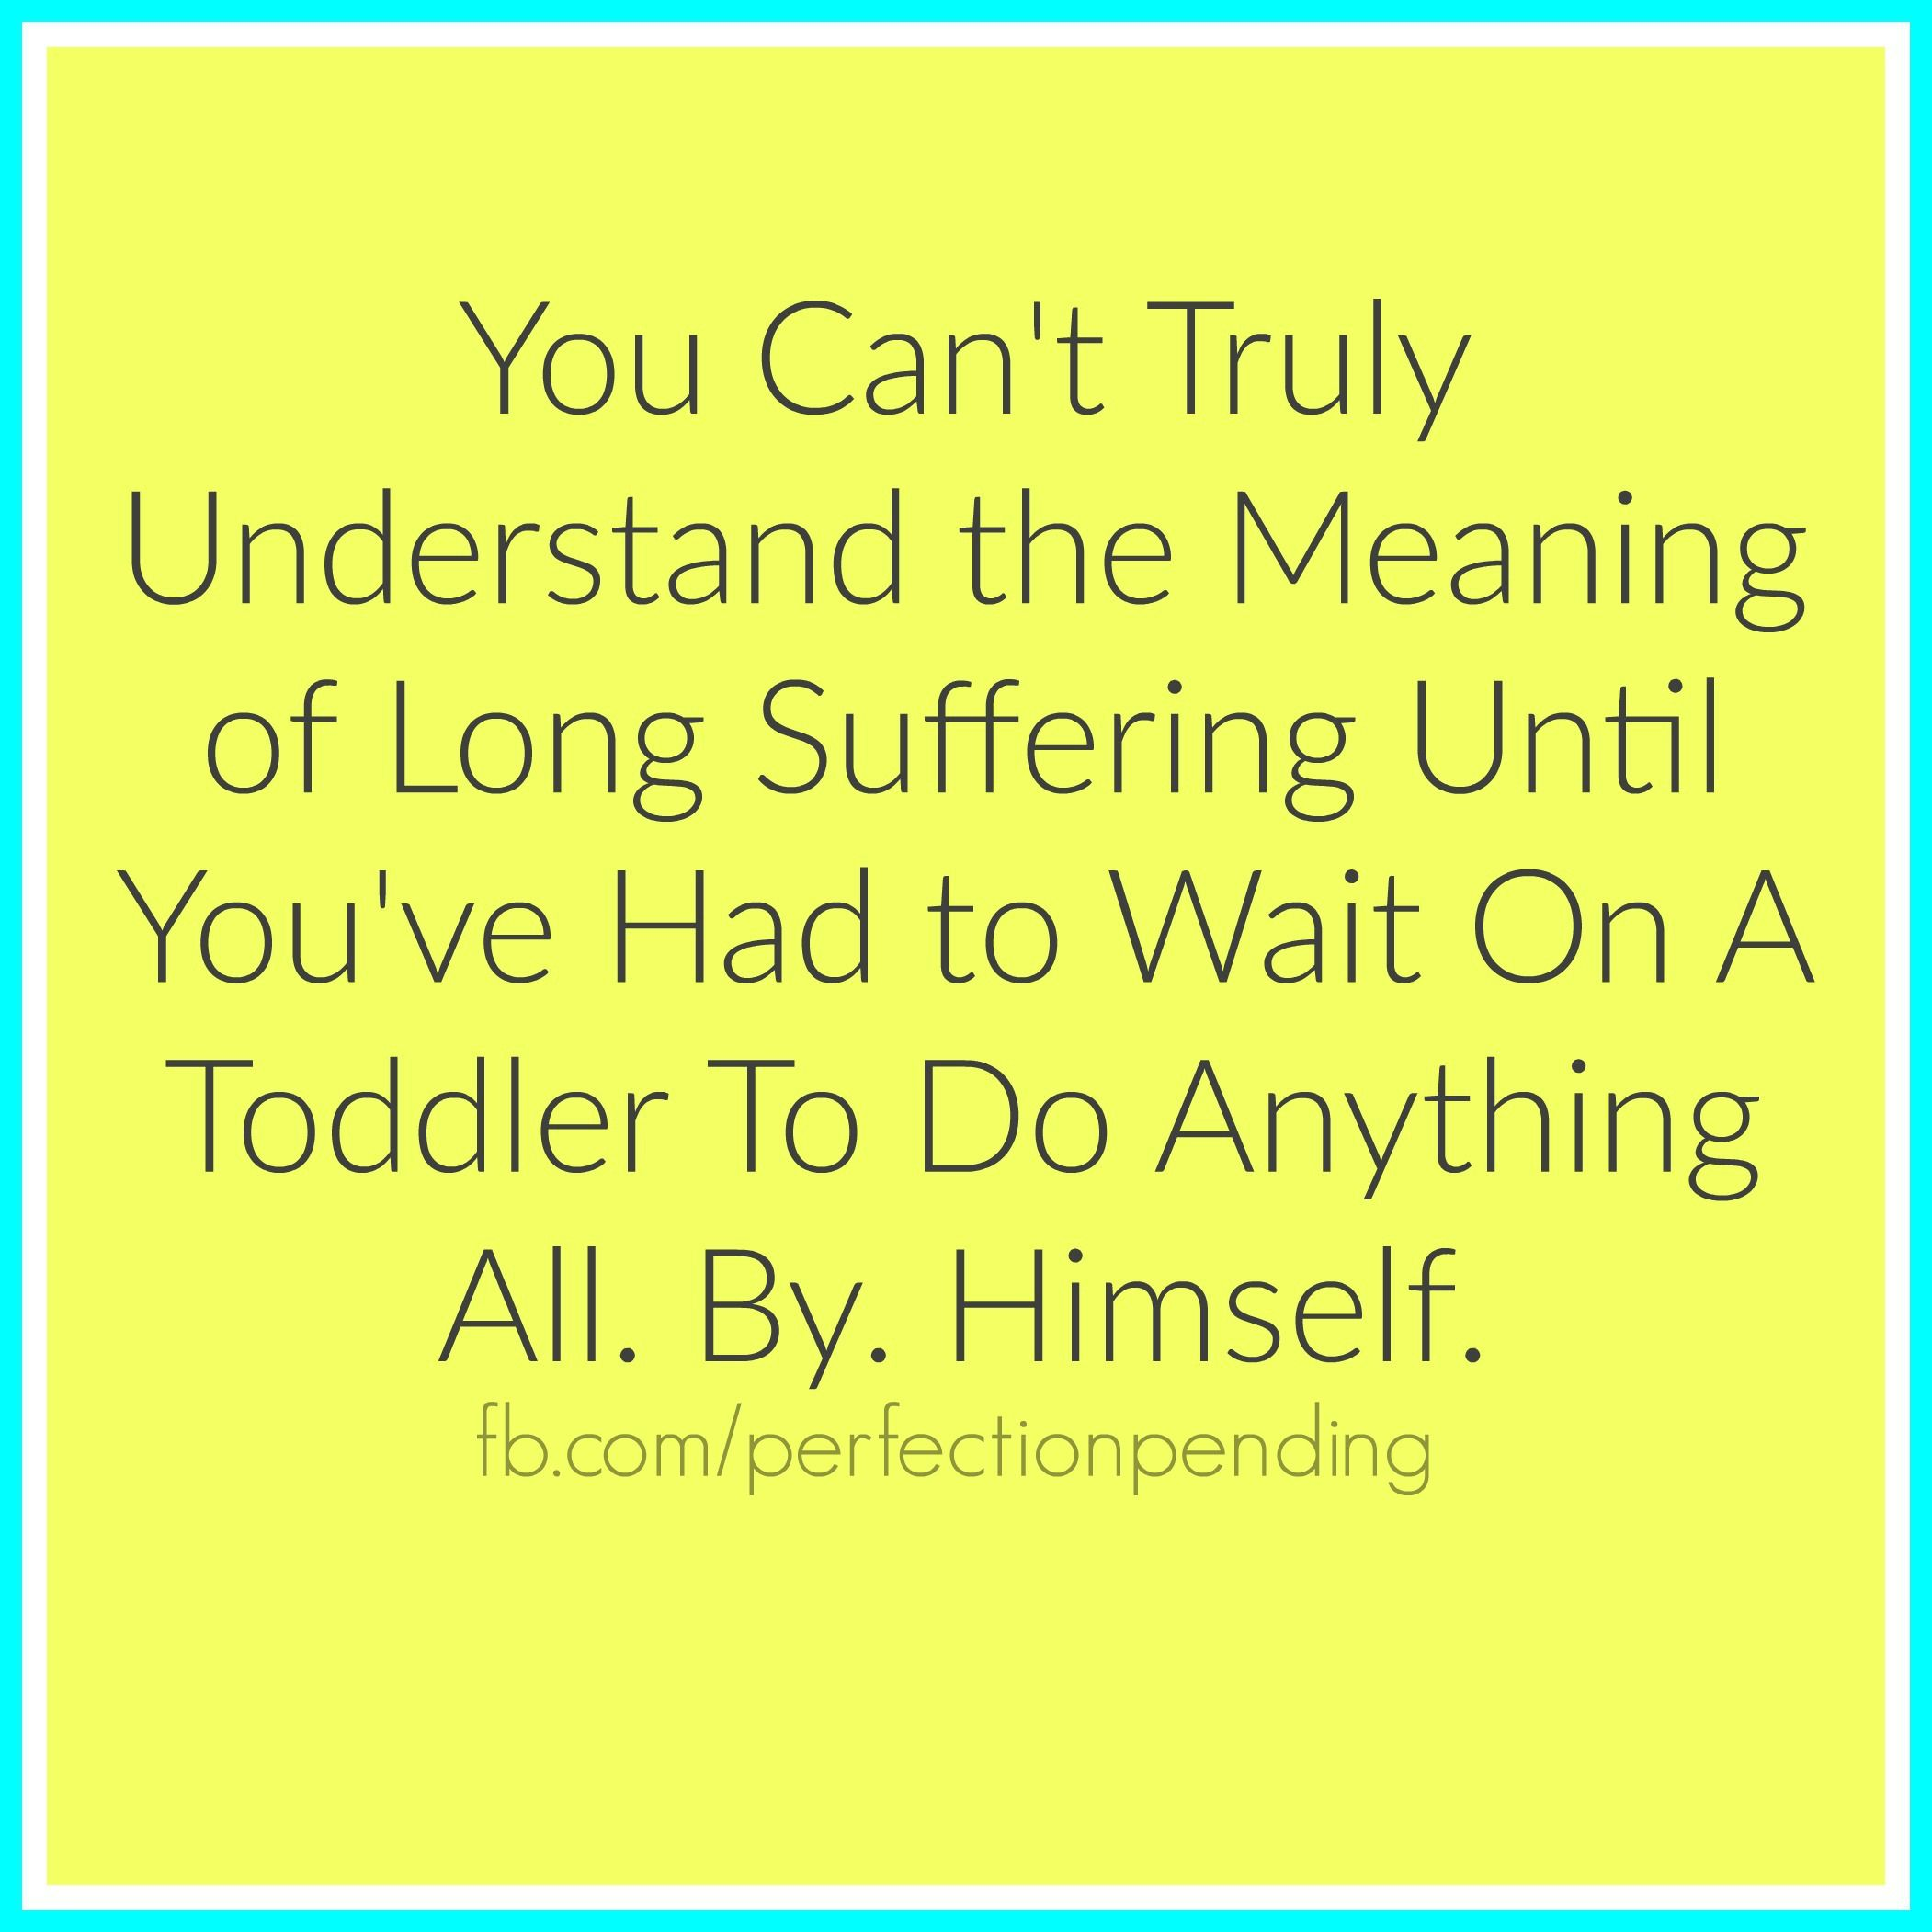 Toddler Quotes The True Meaning Of Long Suffering  You Ve Humor And Funny Stuff